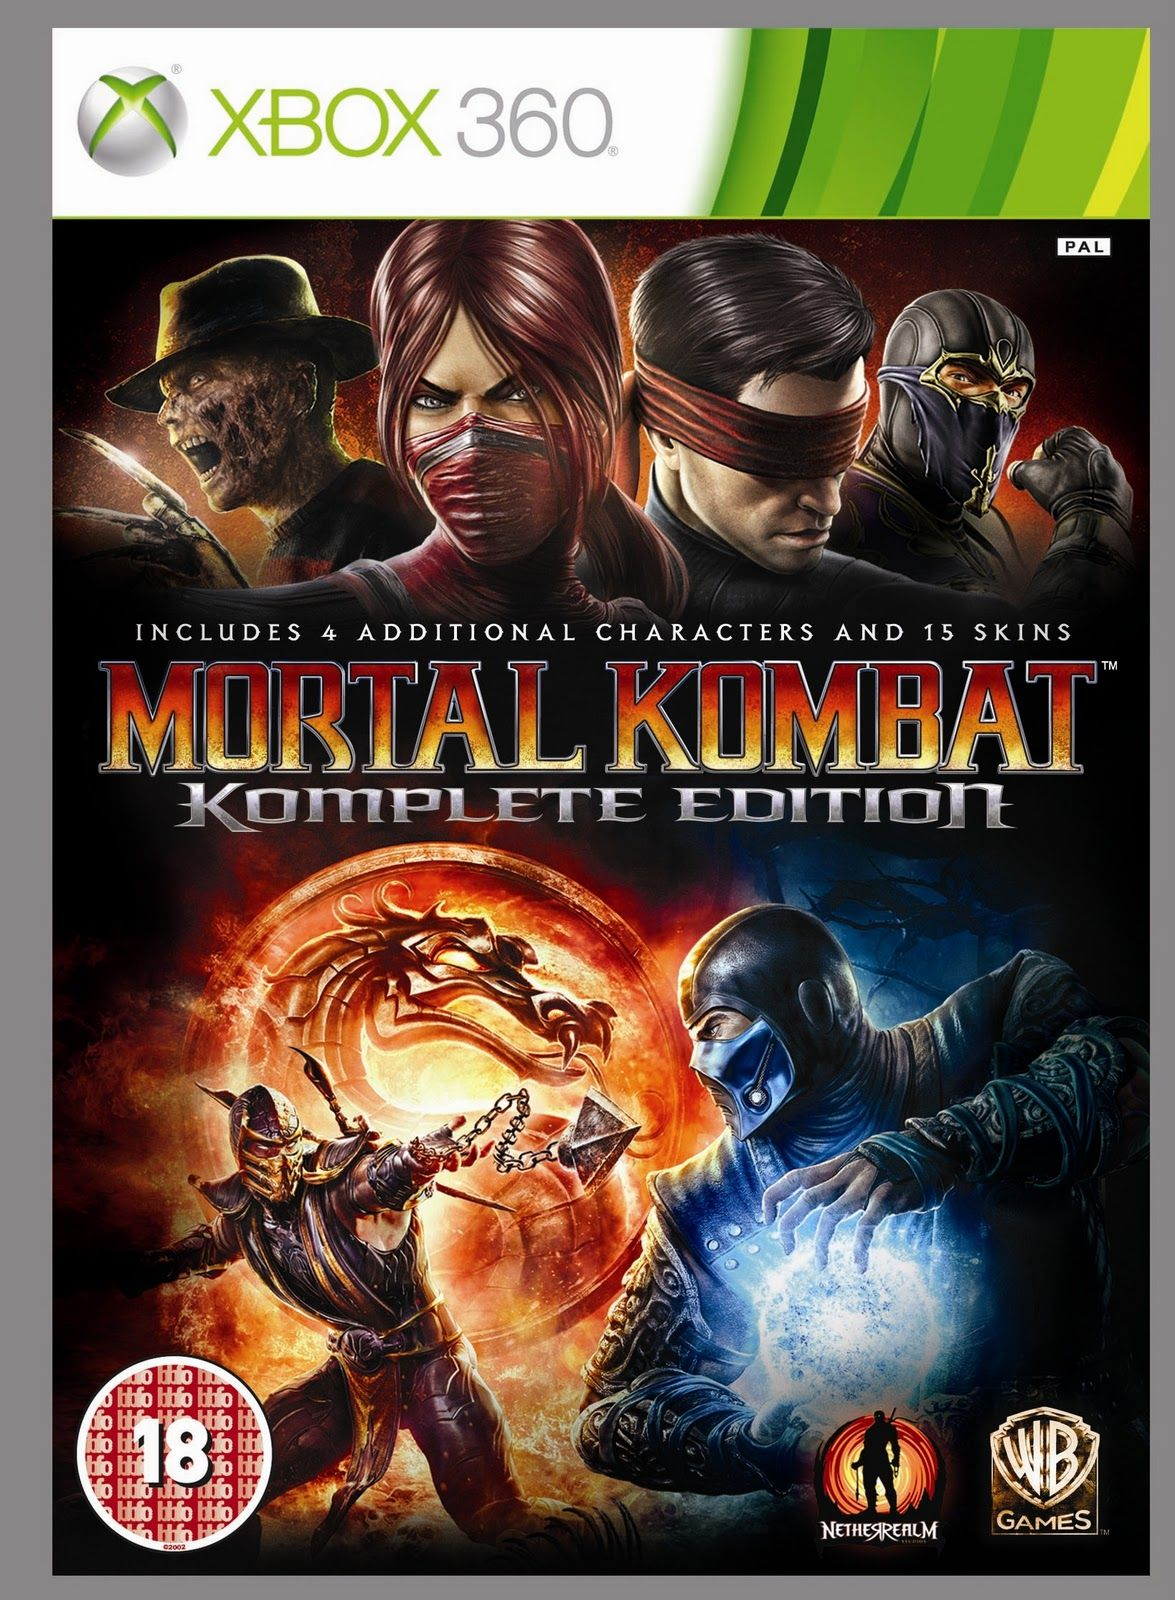 Mortal Kombat Complete Edition You Have To Have It Mortal Kombat Komplete Edition Mortal Kombat Games Mortal Kombat